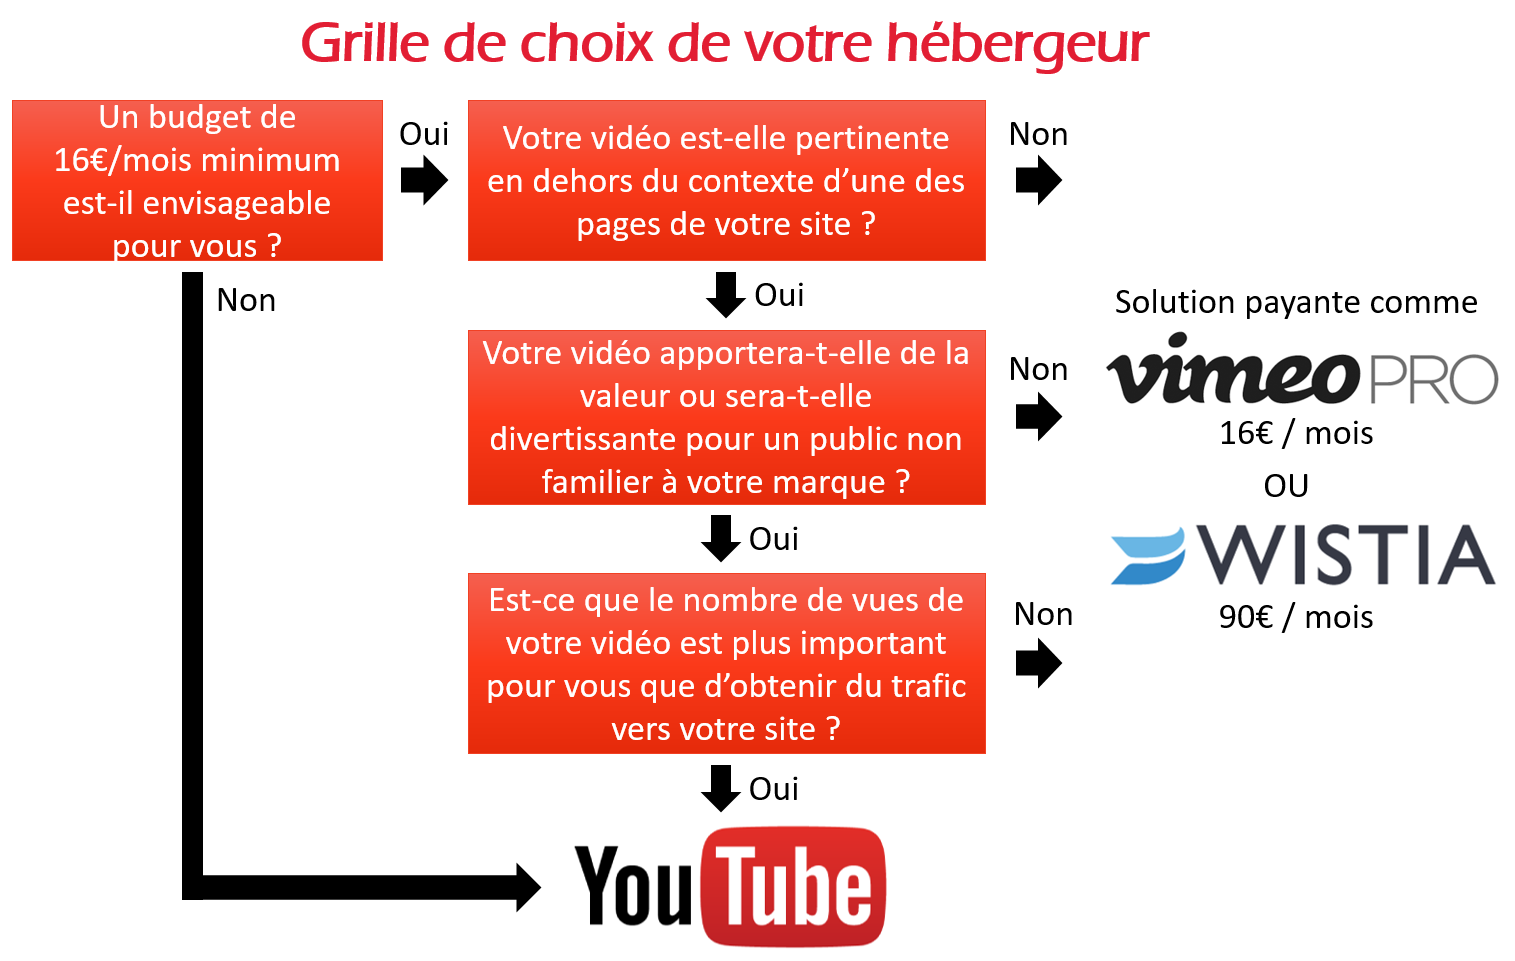 grille choix hebergeur video